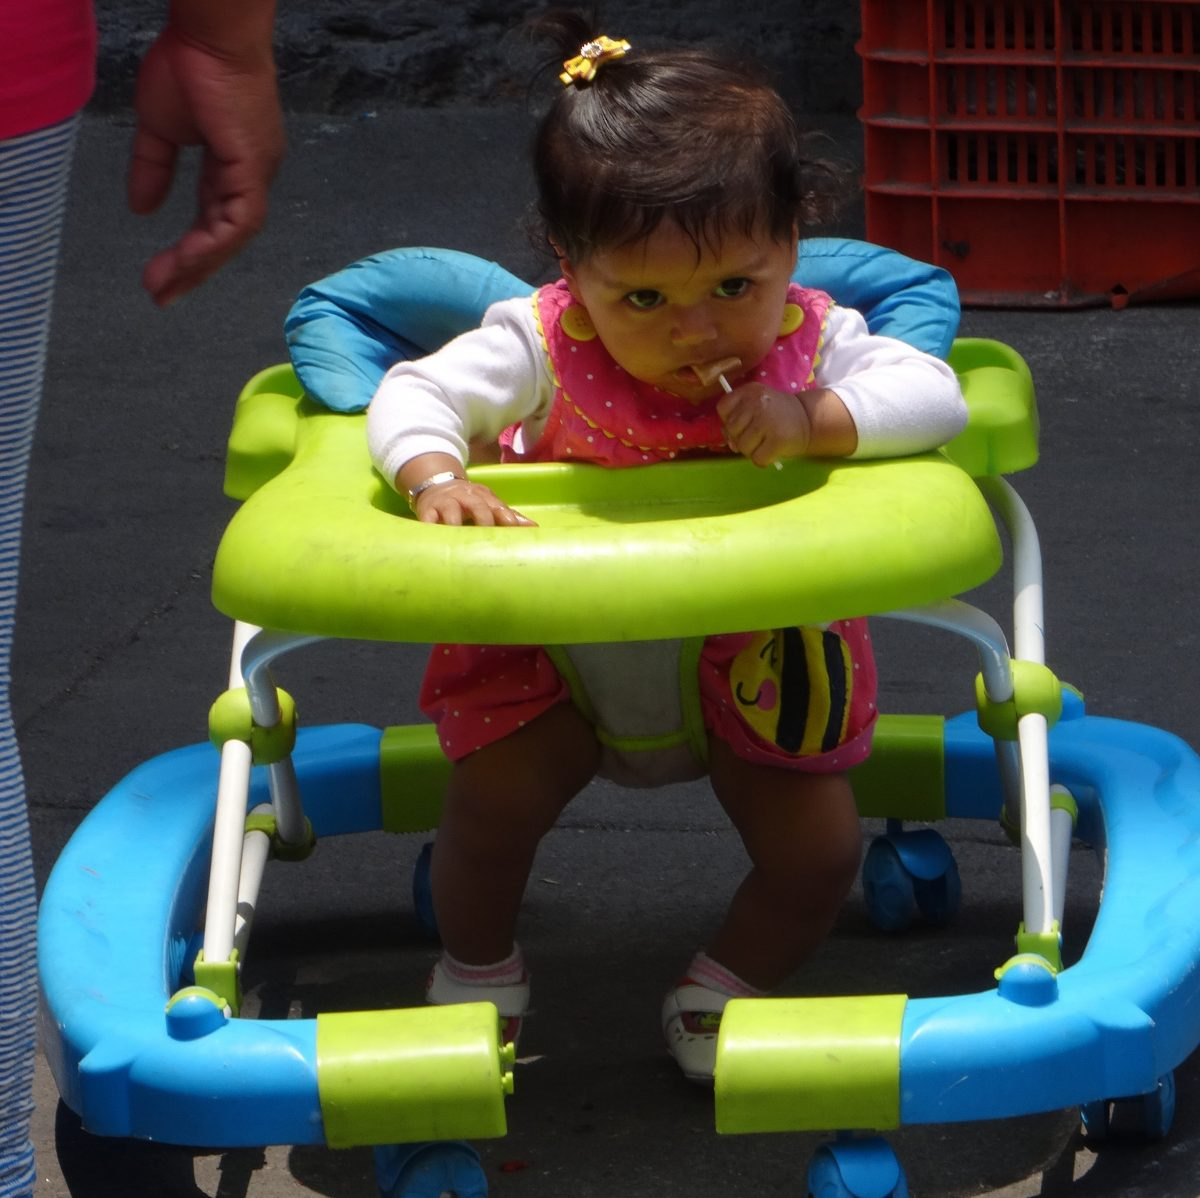 Over 2000 Infants Still Injured by Baby Walkers Every Year ...